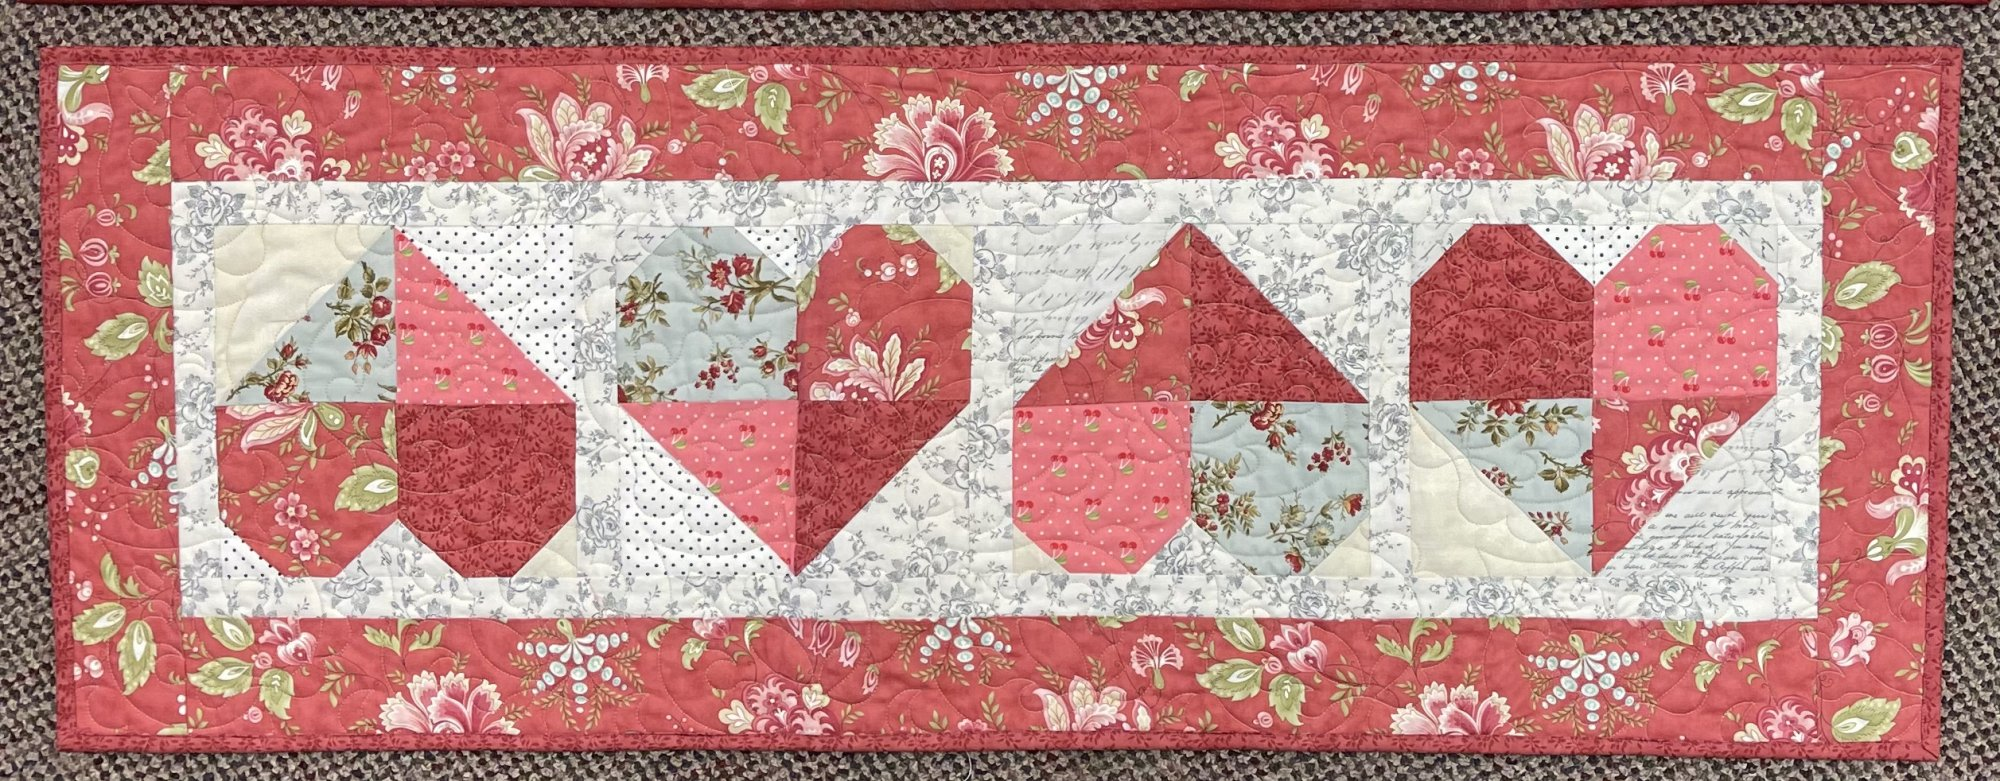 Four Heart Table Runner Floral 16 x 43